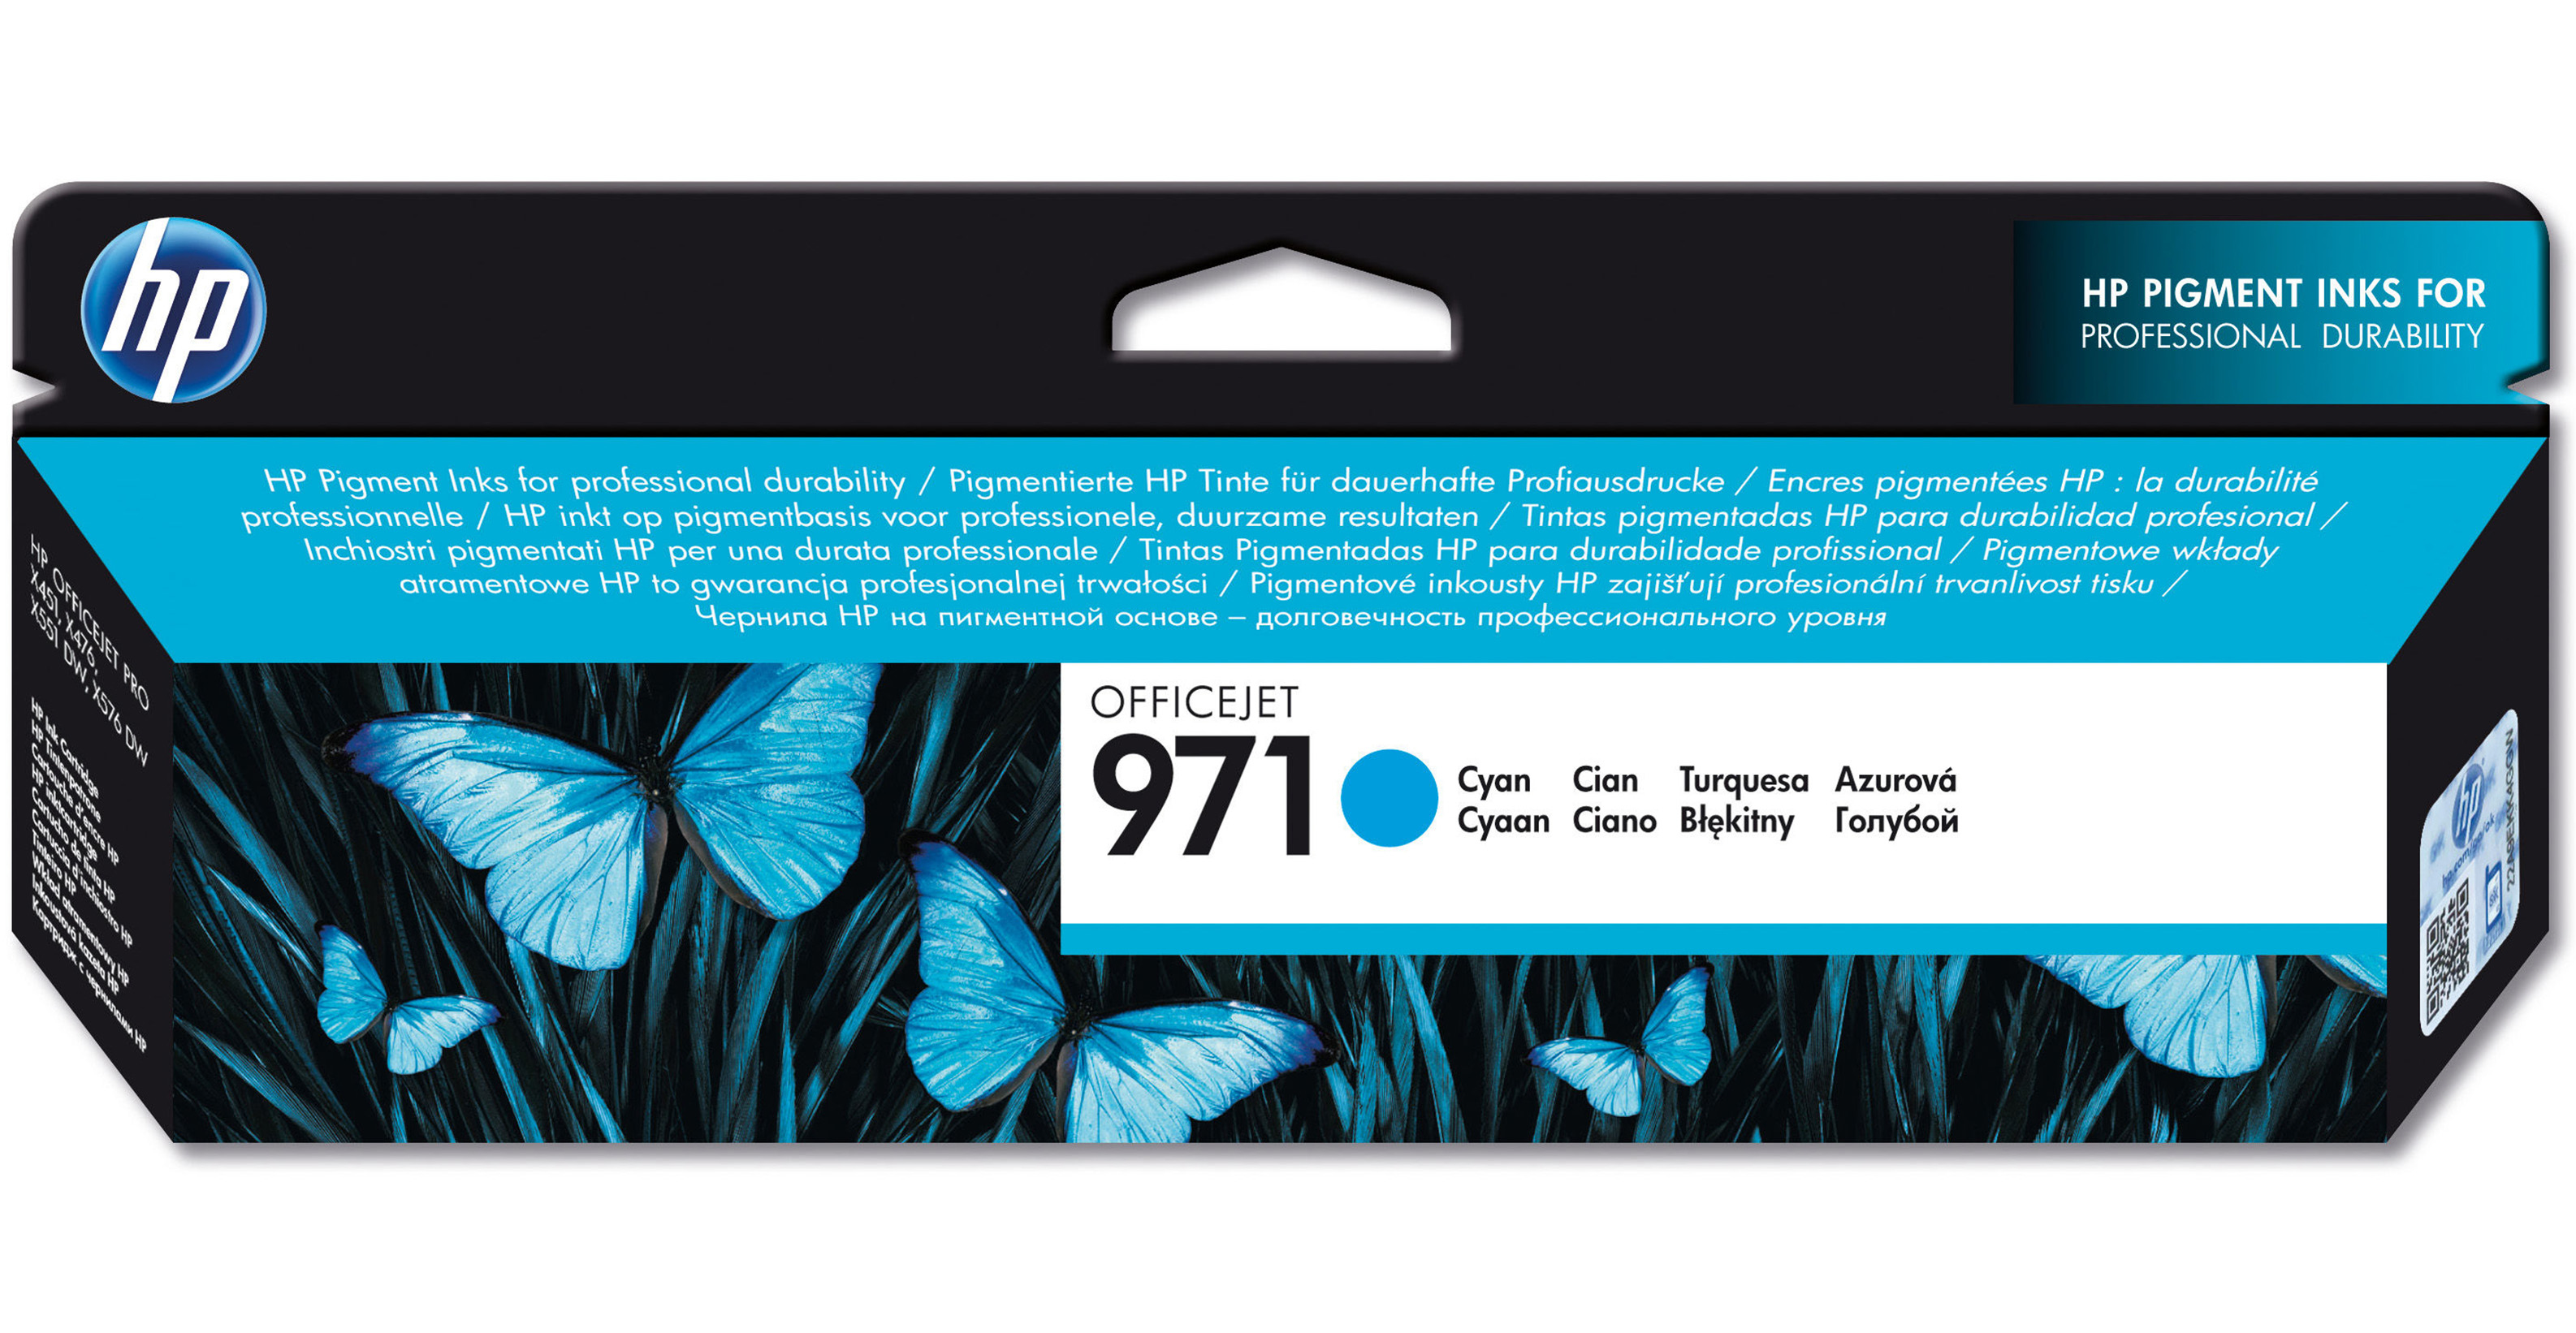 Hpcn622ae      Hp 971 Cyan Officejet          Ink Cartridge                                                - UF01